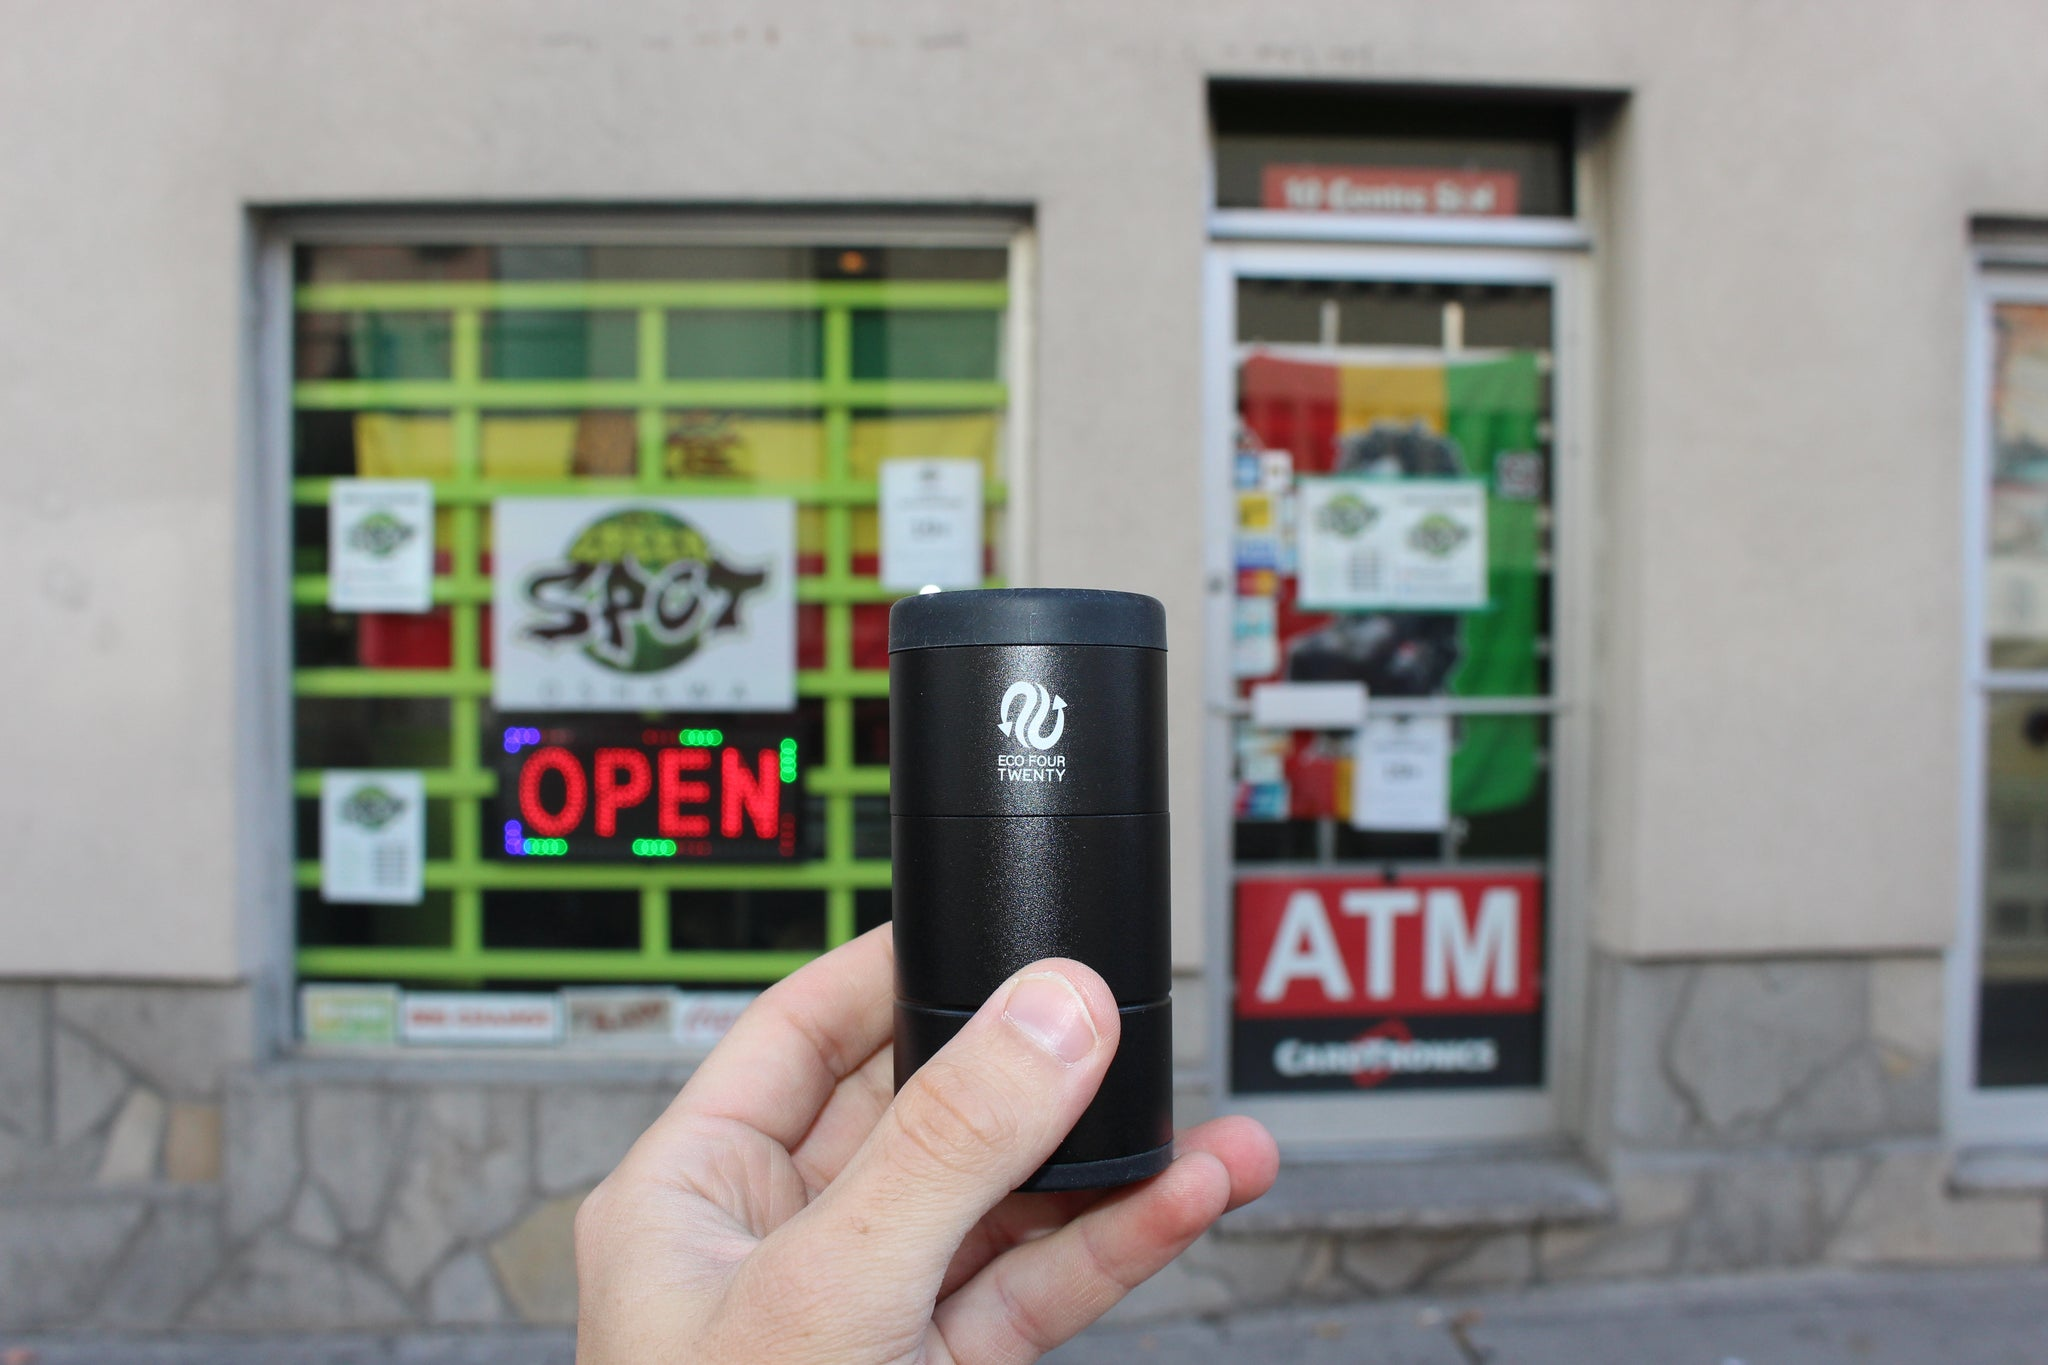 New Feature: Our Products Are Now Available at The Green Spot in Oshawa, Canada!